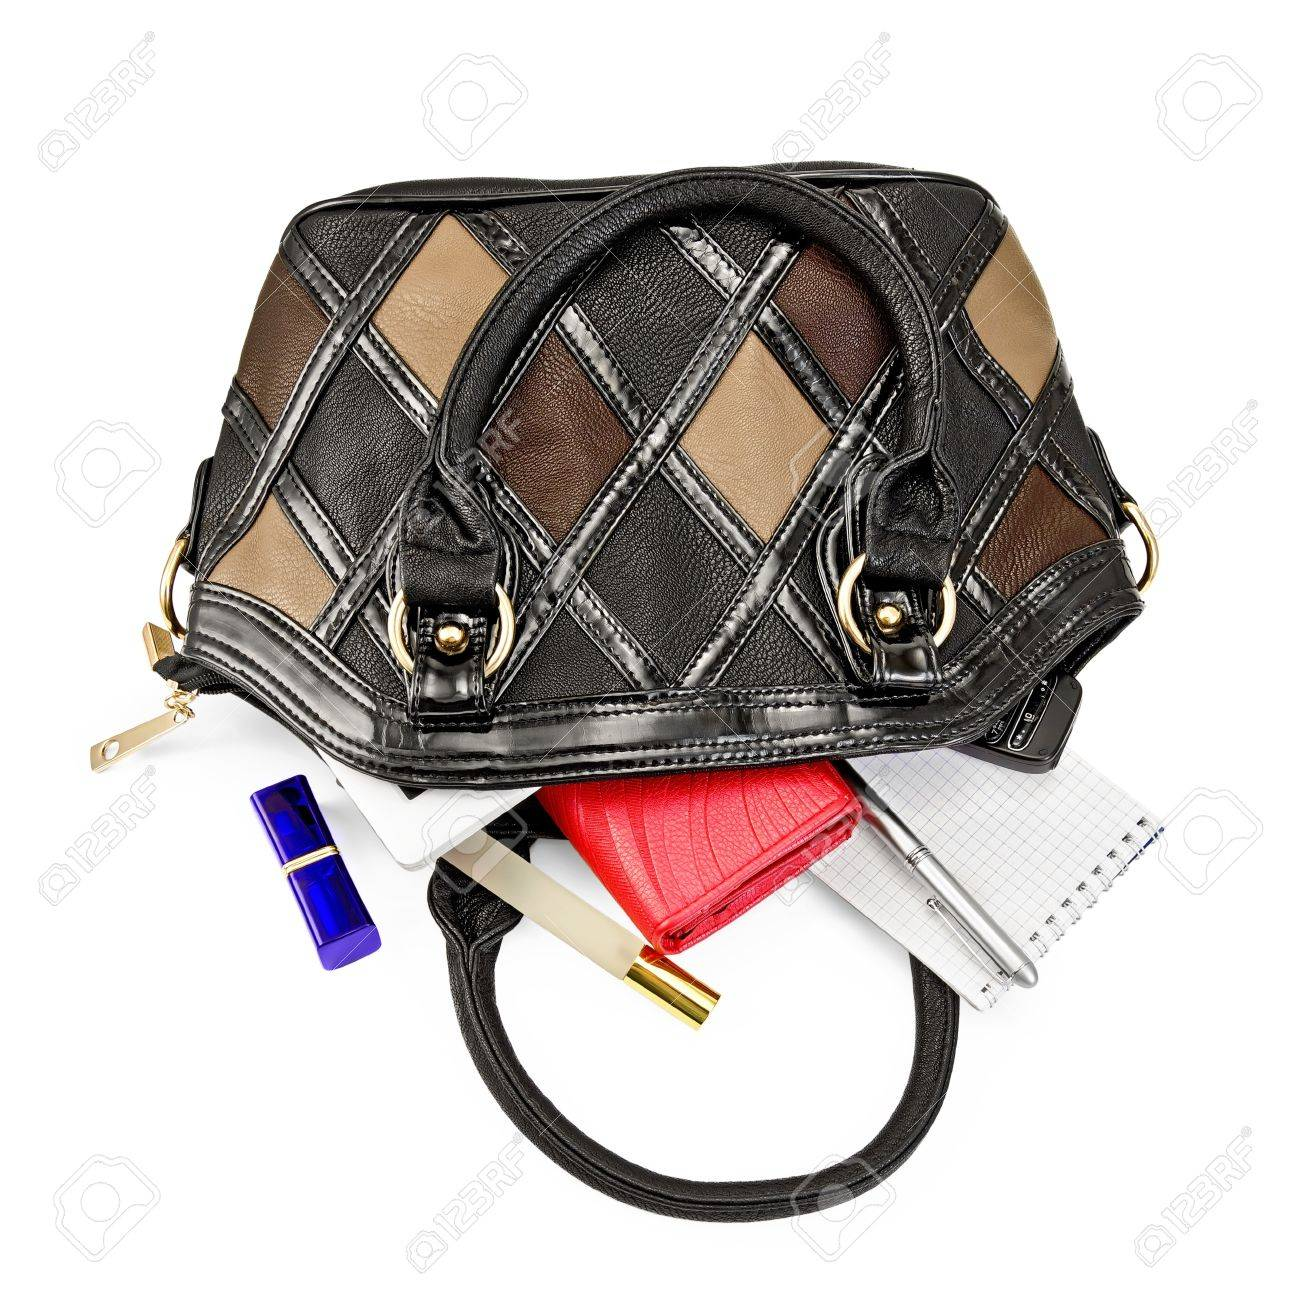 Open Ladies Leather Handbag, Red Purse, Perfume, Lipstick, Phone ...